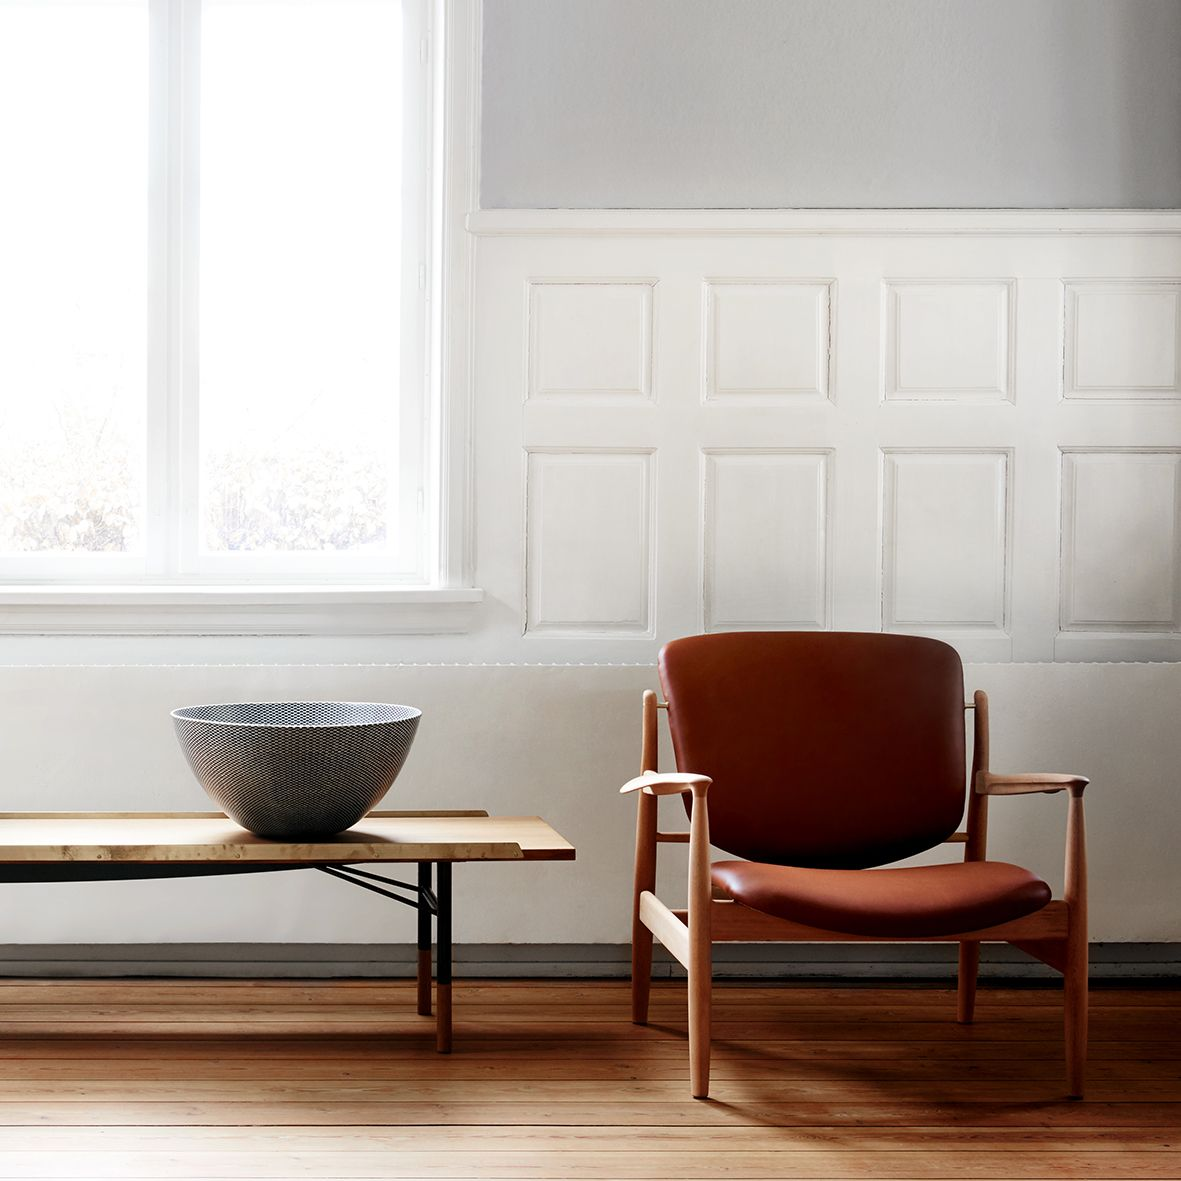 Bench images   House of Finn JuhlBench images   House of Finn Juhl   furniture   Pinterest   House  . Finn Juhl Chair 108. Home Design Ideas